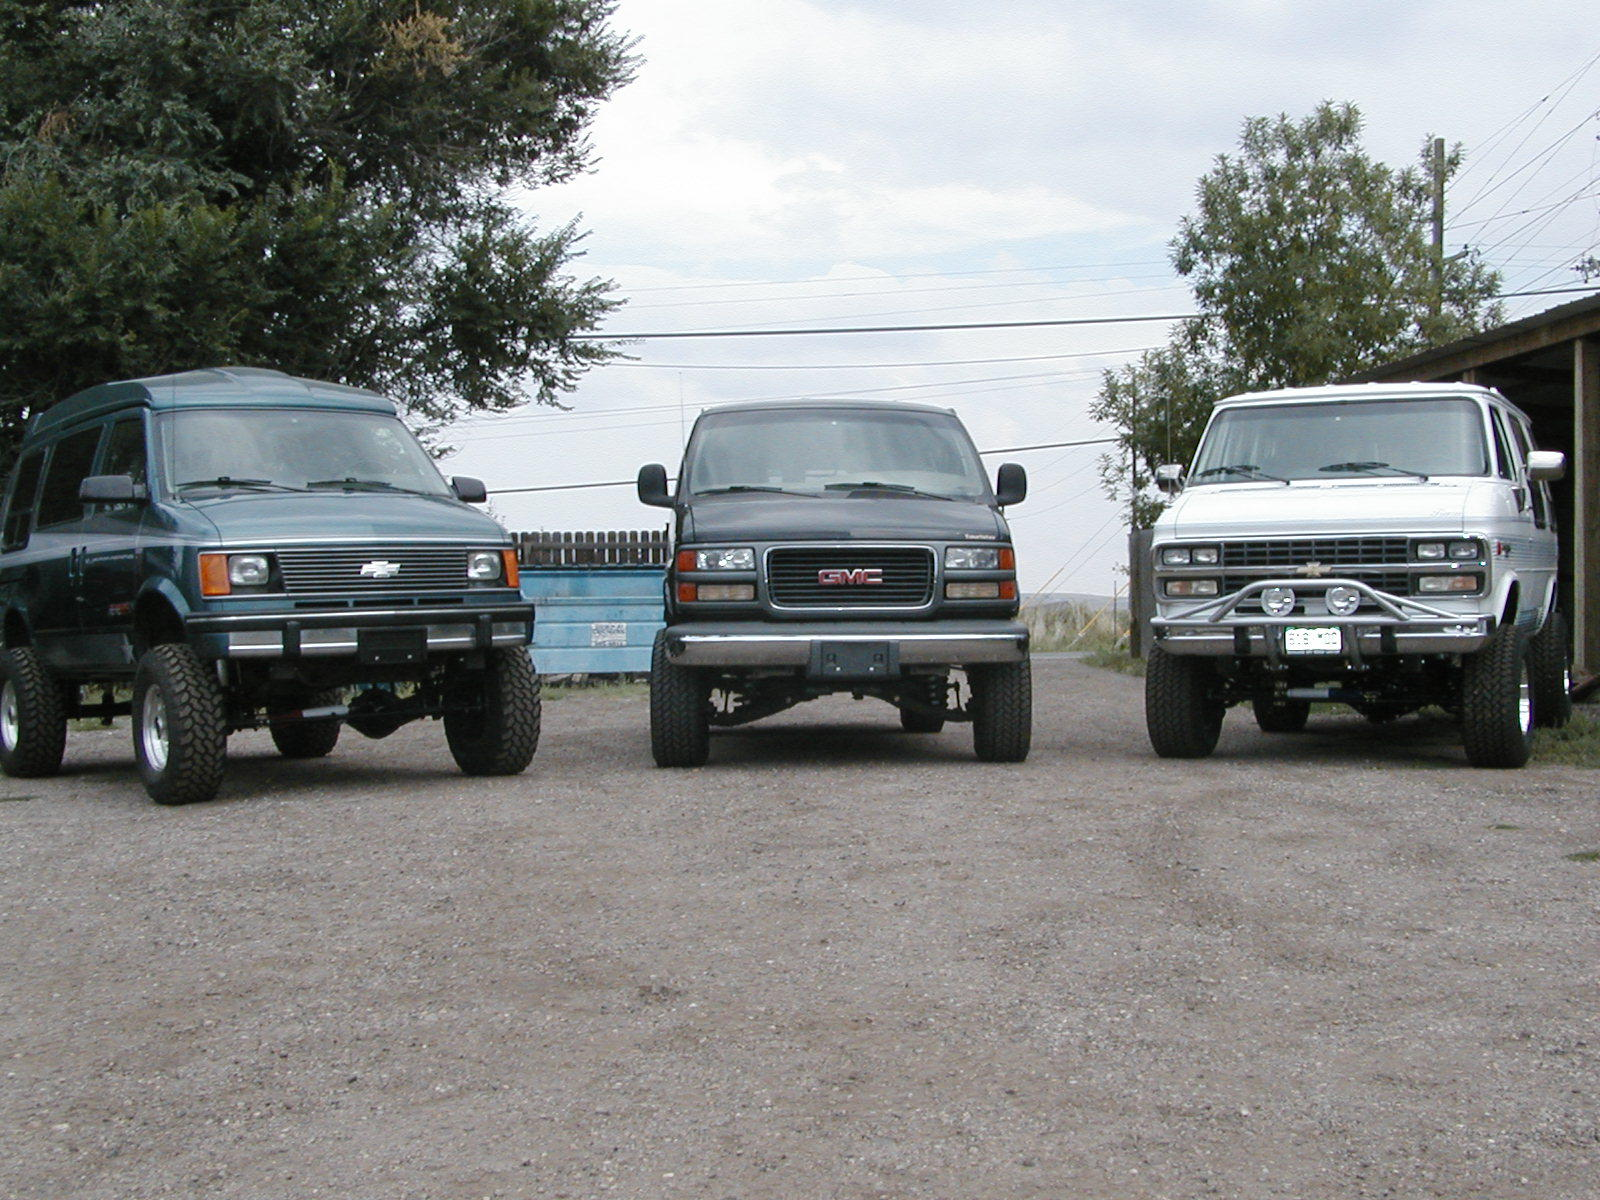 4x4 Chey and Gmc vans